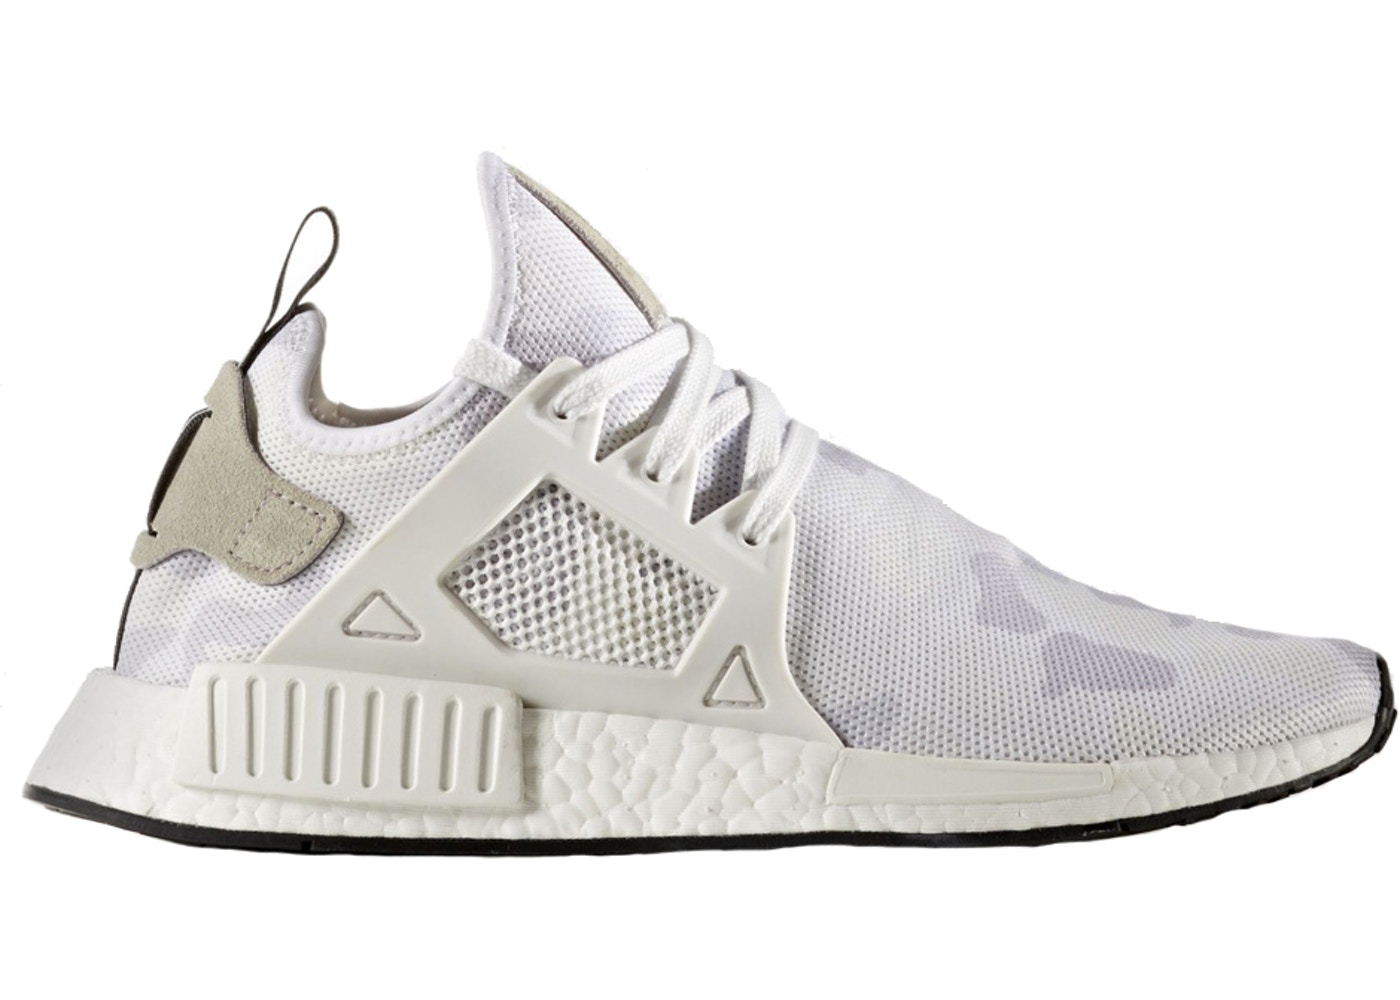 9527636be0d48 adidas NMD XR1 White Duck Camo - BA7233